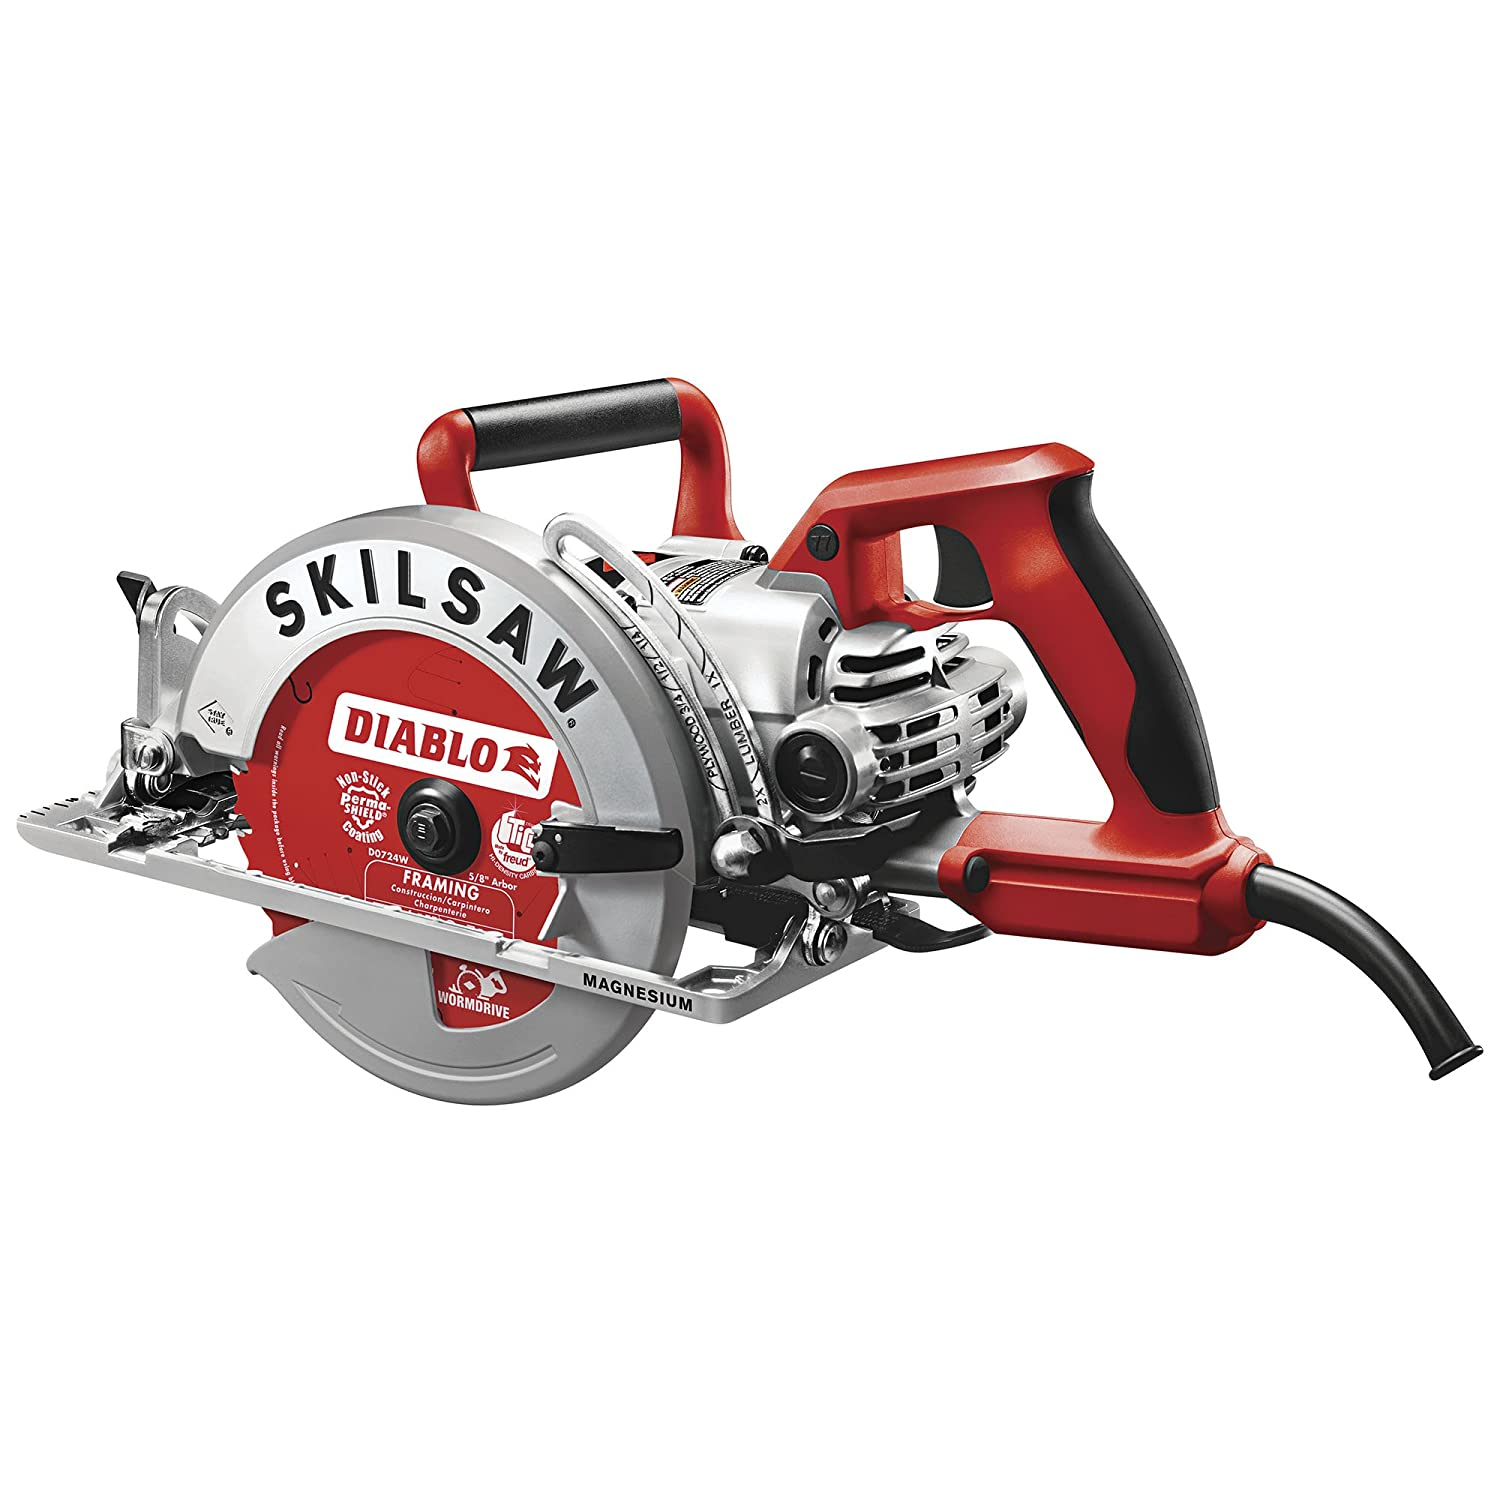 Skilsaw Magnesium Lightweight Worm Drive Circular Saw – 7 1 4in. 15 Amp, Model Number SPT77WML-22